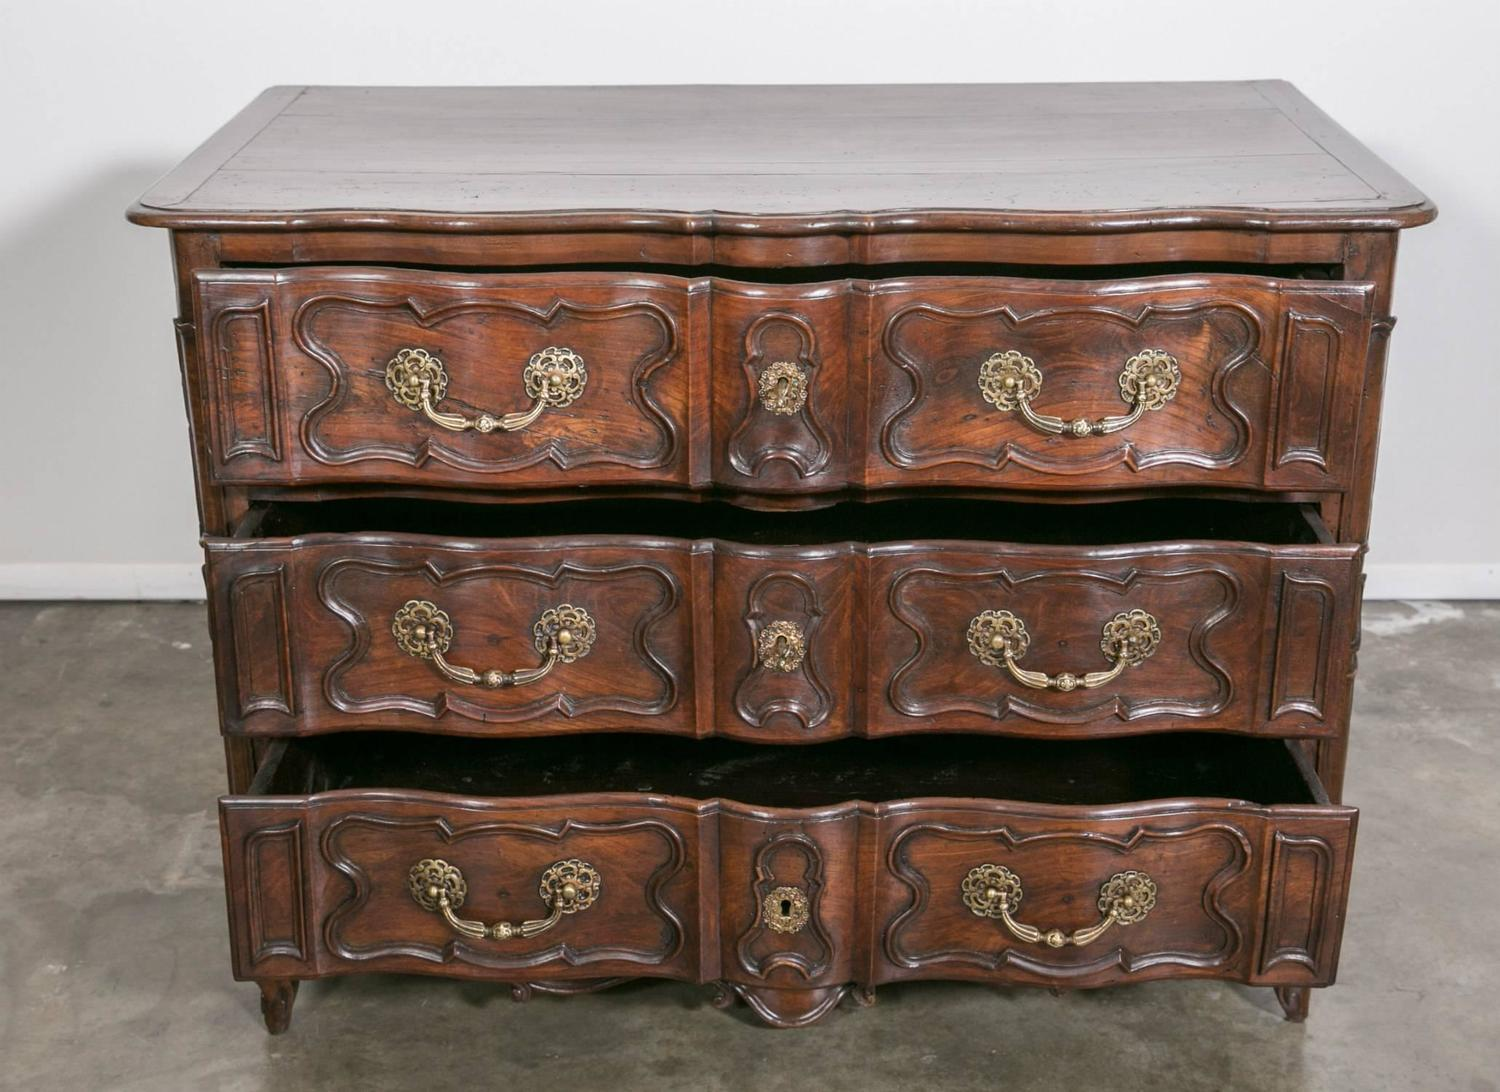 18th century french louis xv period lyonnaise commode en arbalete in walnut for sale at 1stdibs. Black Bedroom Furniture Sets. Home Design Ideas